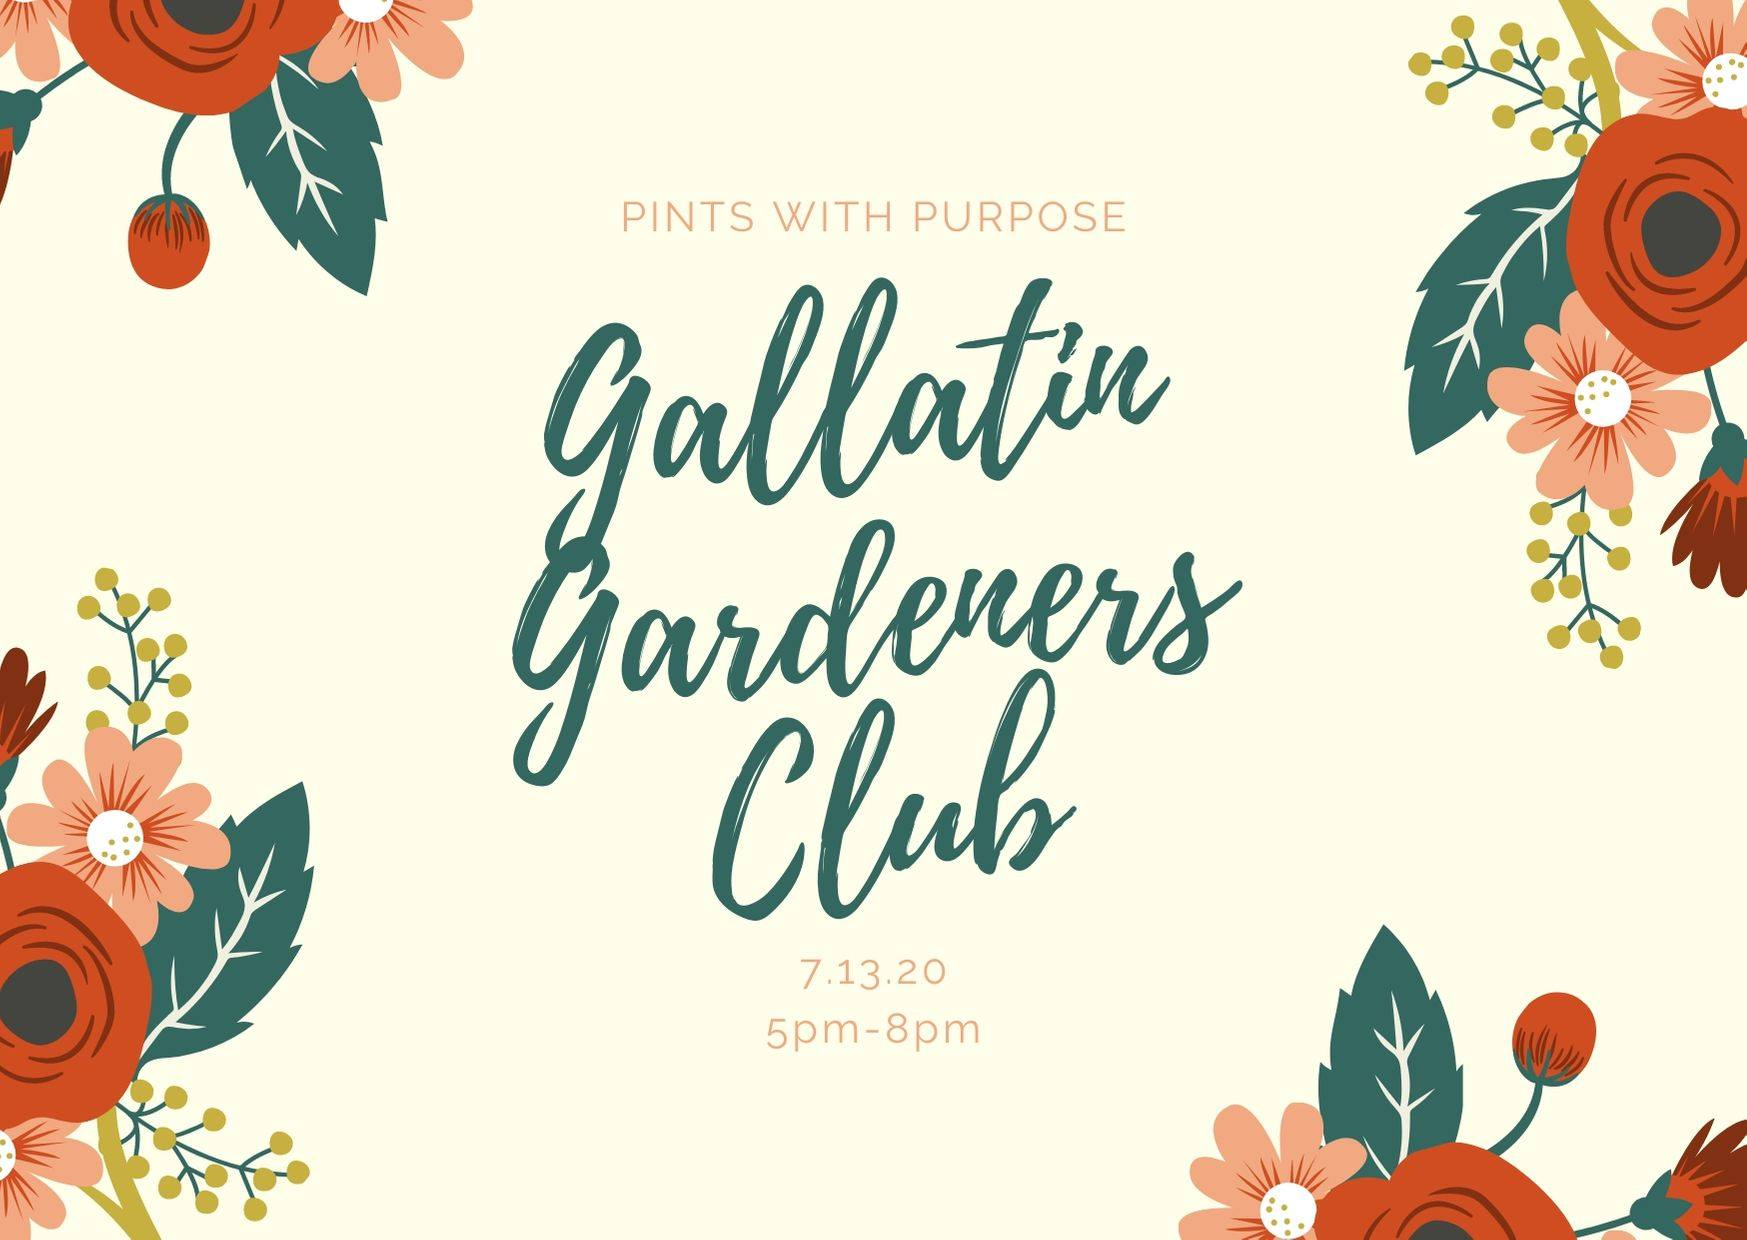 Pints with Purpose :: Gallatin Gardeners Club